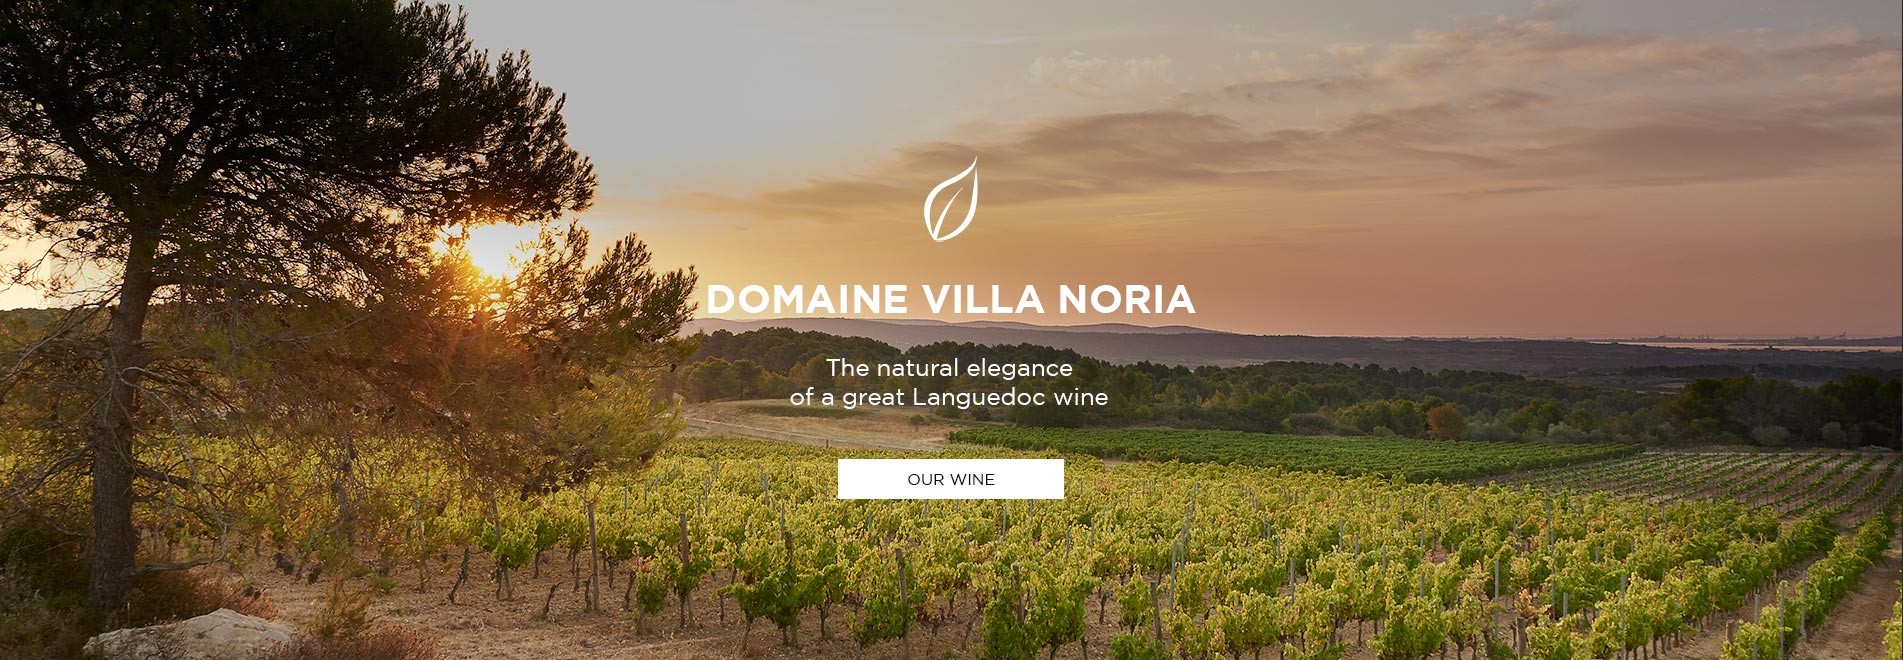 Winery Languedoc